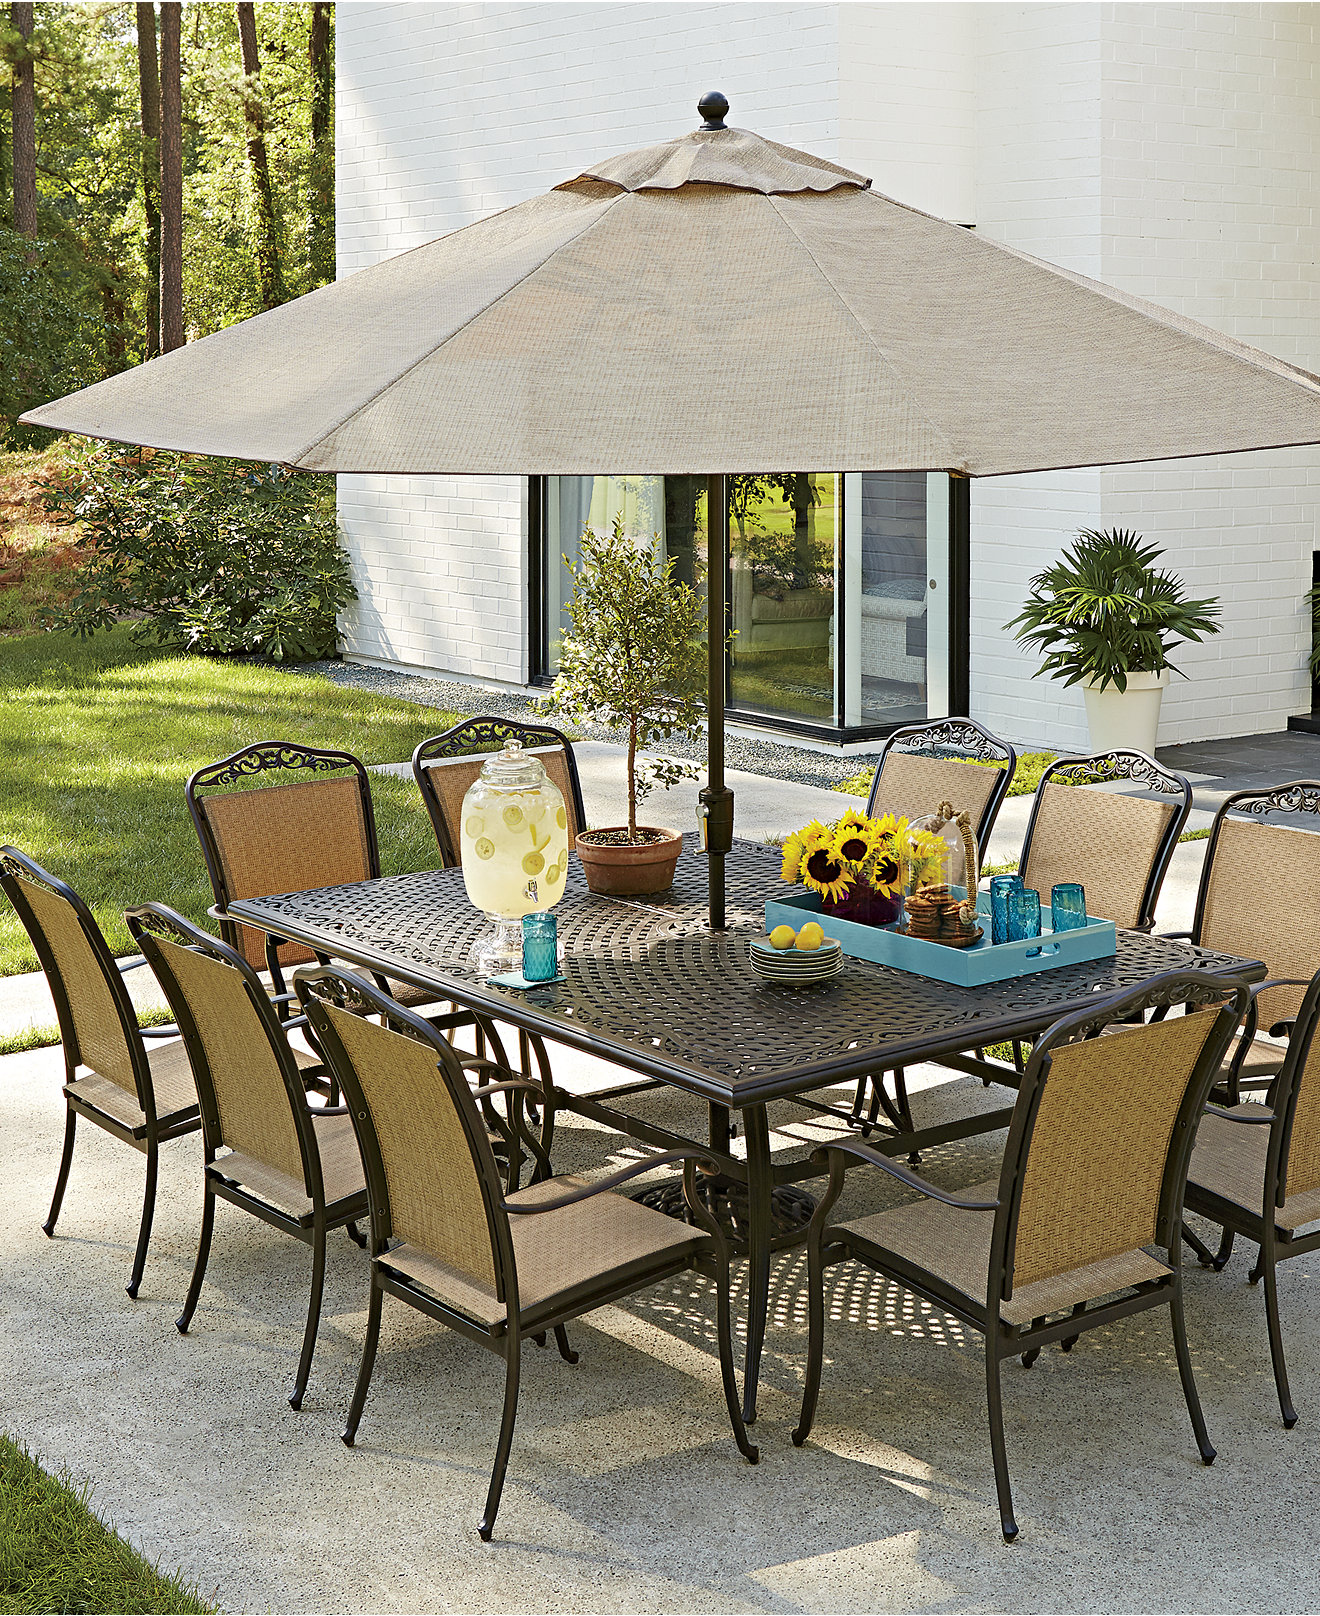 Beachmont Outdoor Patio Furniture Designs - Beachmont Outdoor Dining Patio Furniture - Outdoor Ideas